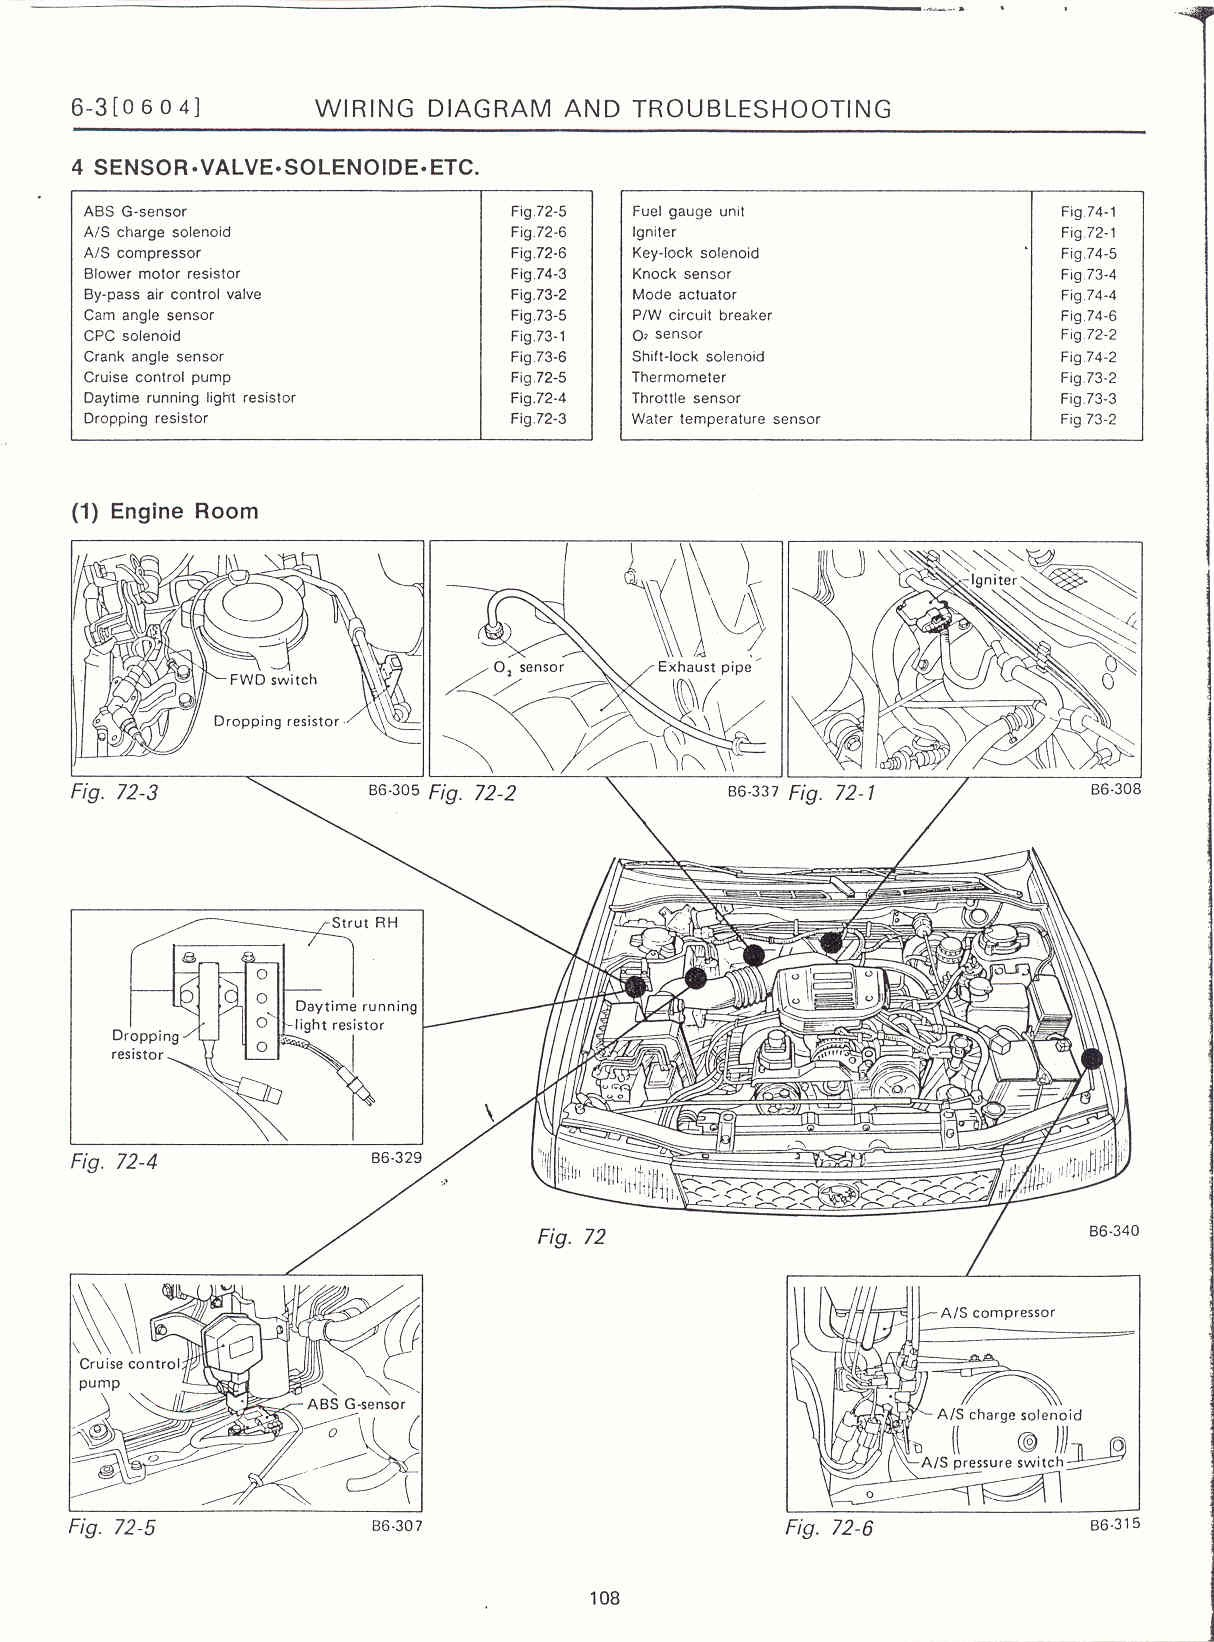 [diagram] 2002 subaru wrx exhaust diagram full version hd ... 2002 wrx wiring diagram headlamp #4